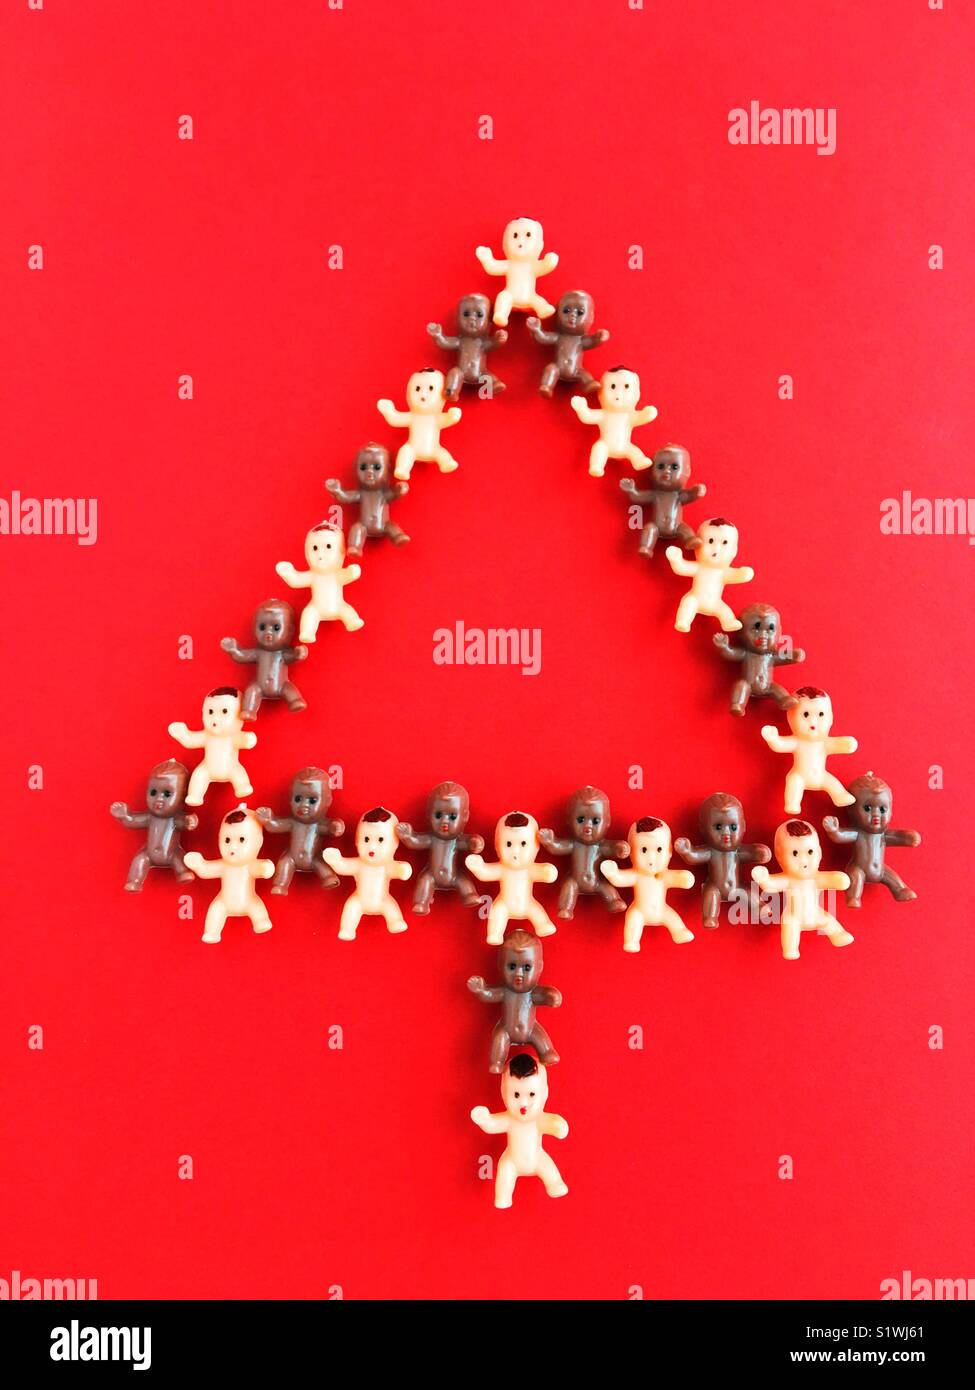 Tiny plastic baby dolls form the shape of a christmas tree. - Stock Image